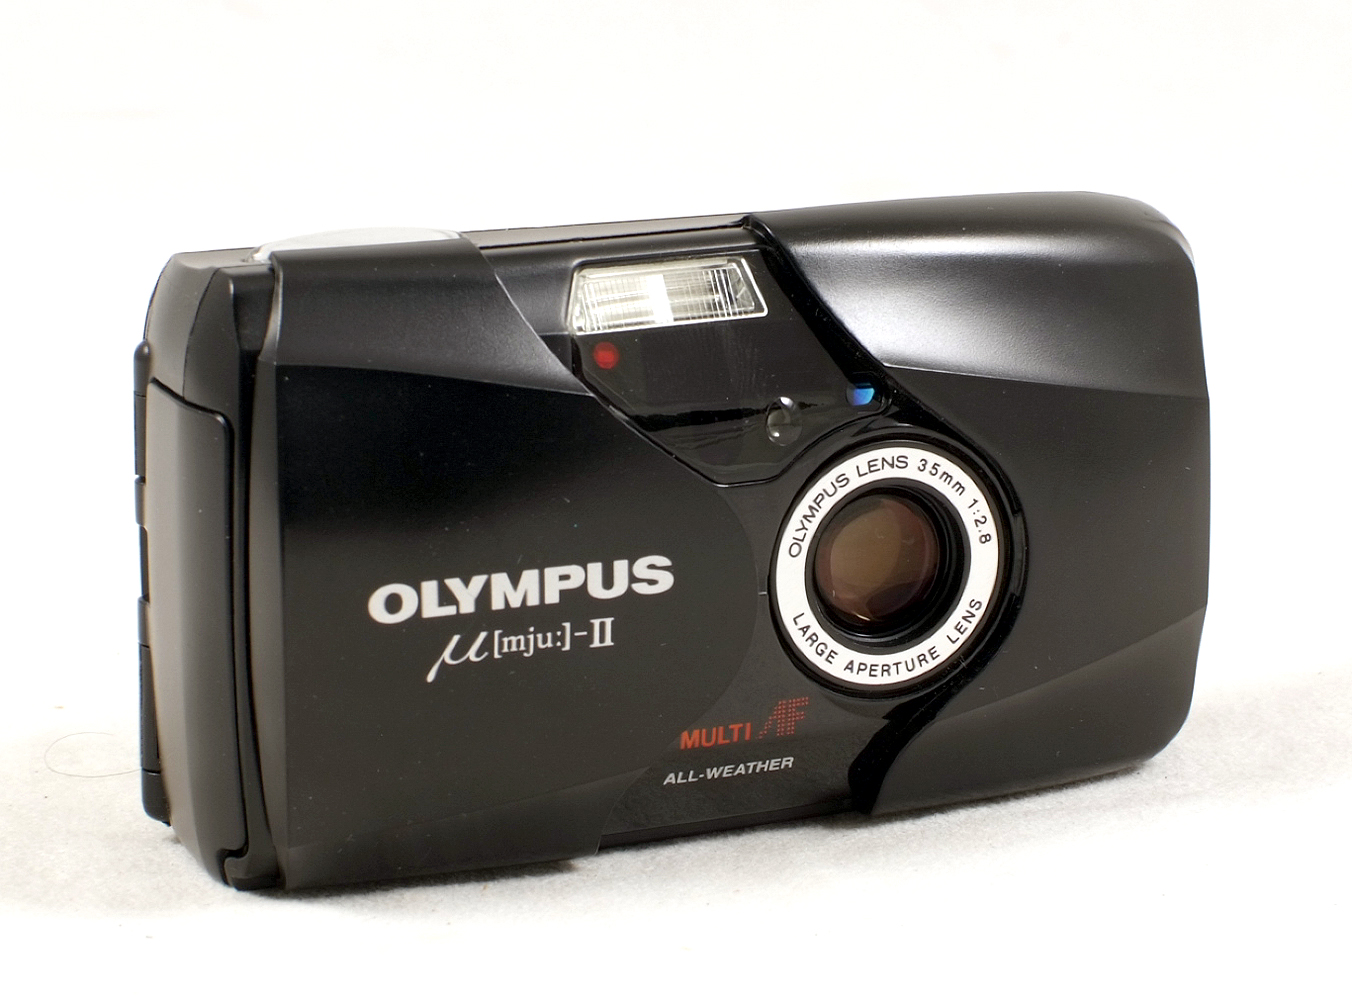 Lot 48 - Olympus Mju II Compact 35mm Film Camera. Condition 5F. With f2.8 AF AW lens.